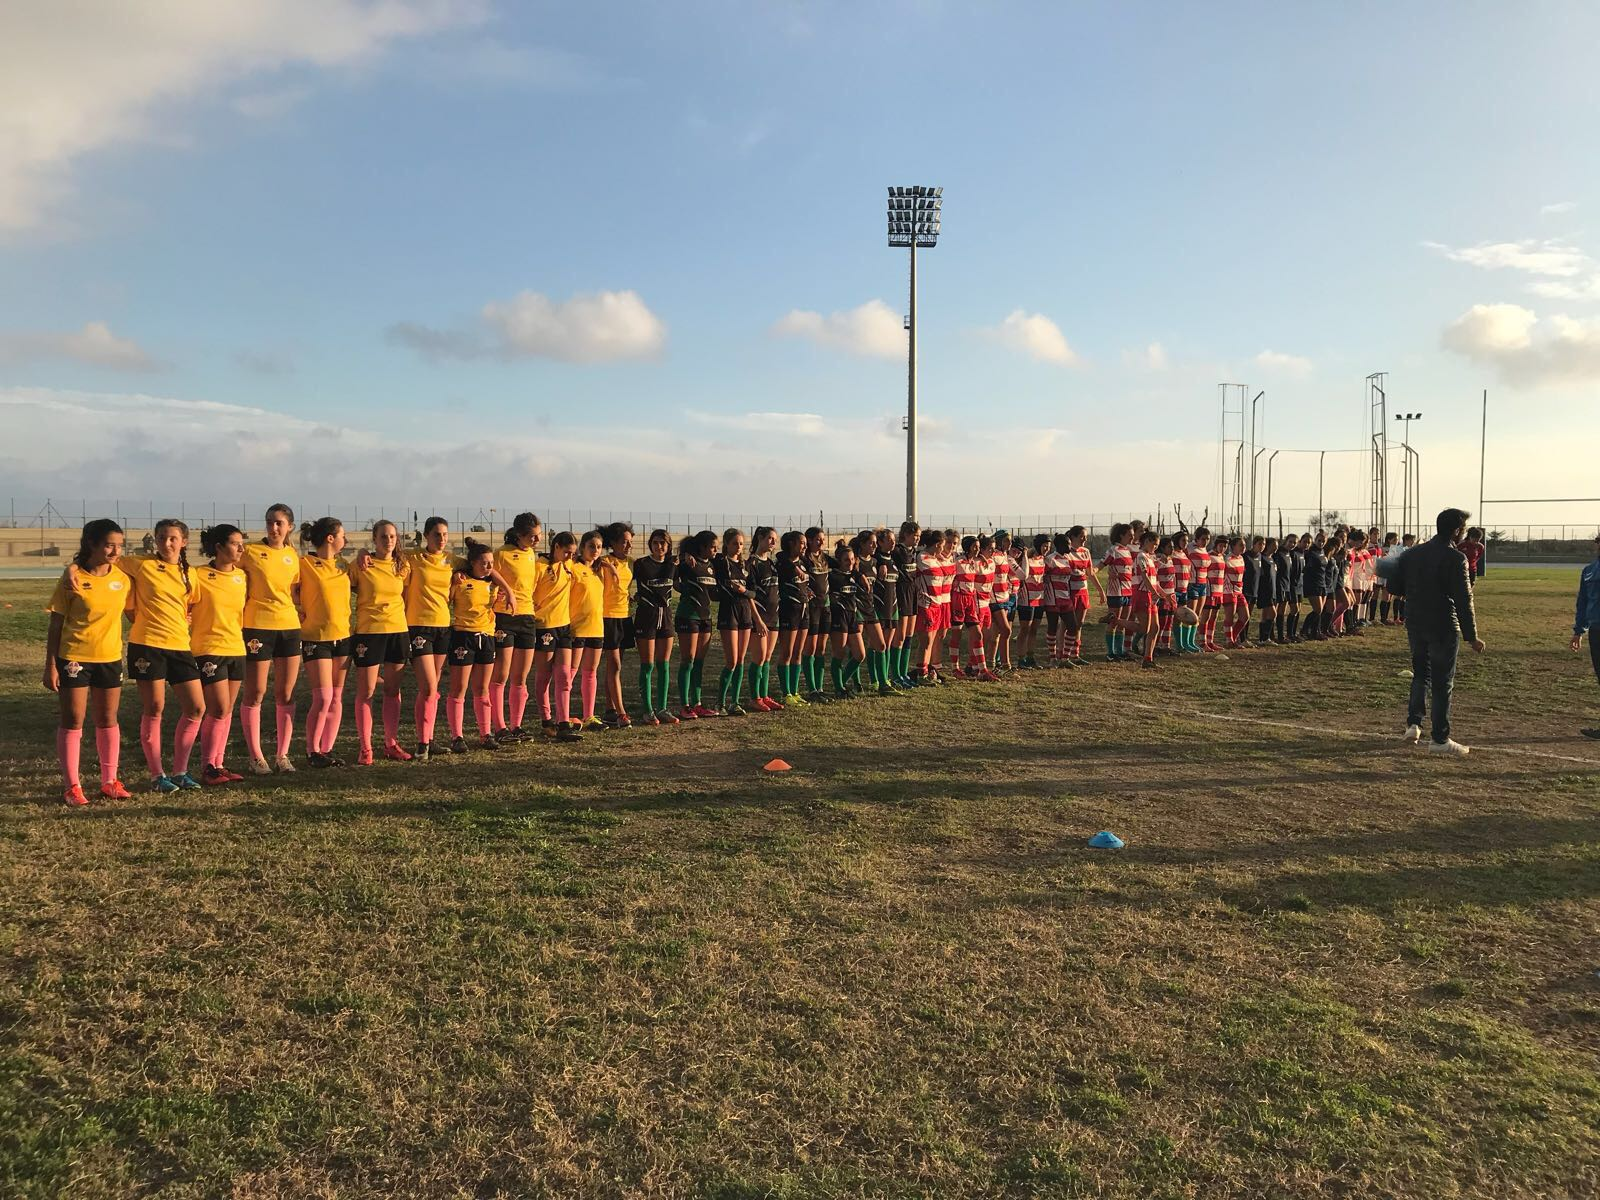 2 rugby